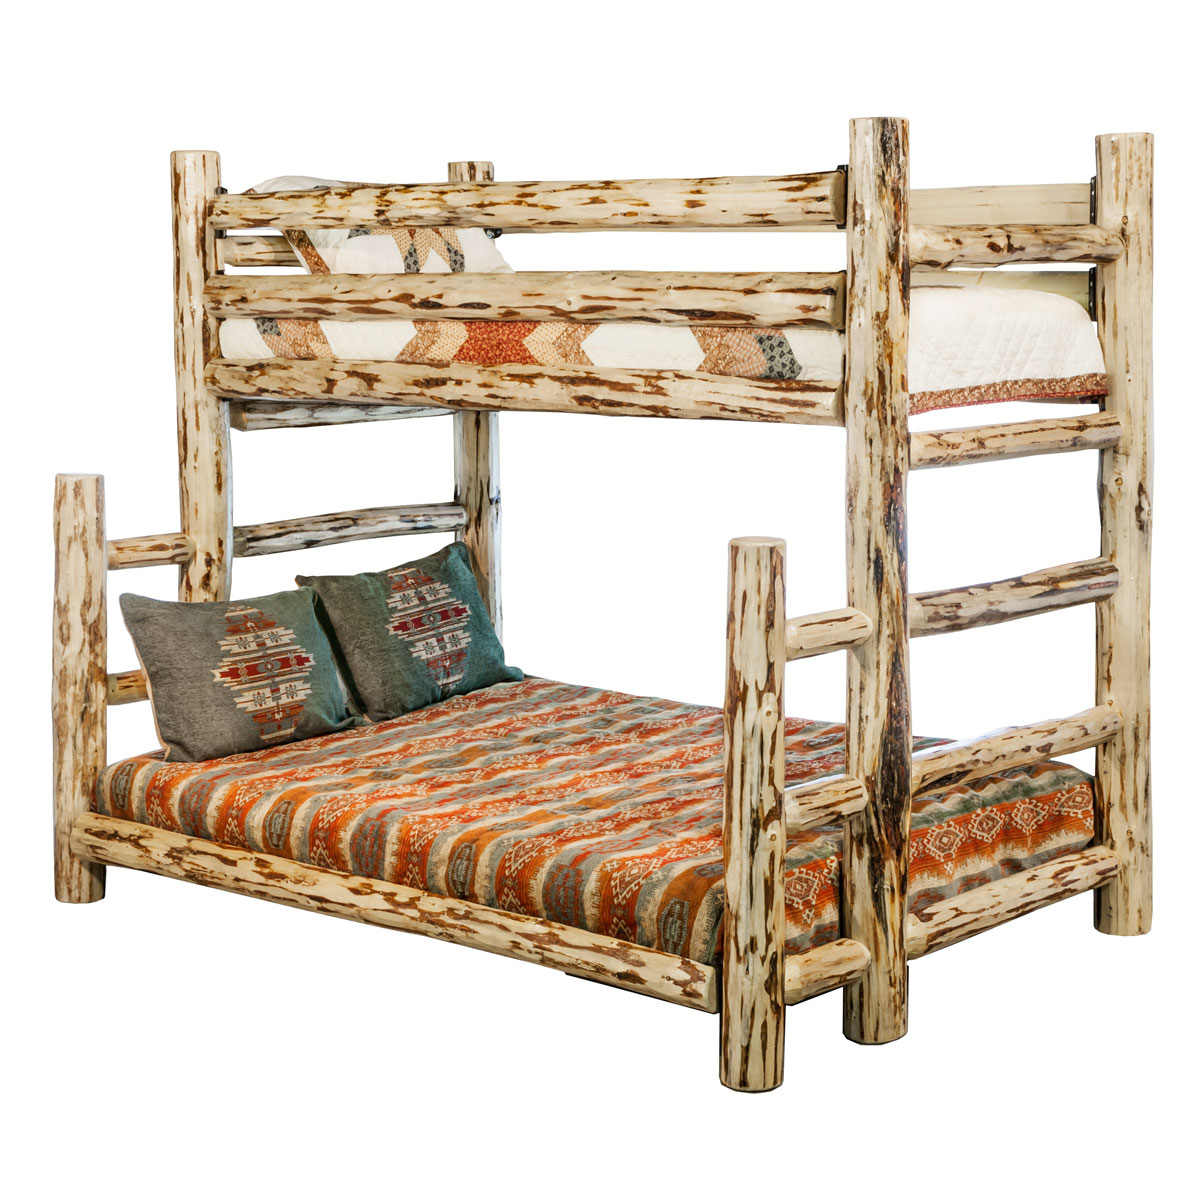 Black Forest Decor Montana twin/full bunk bed - lacquered